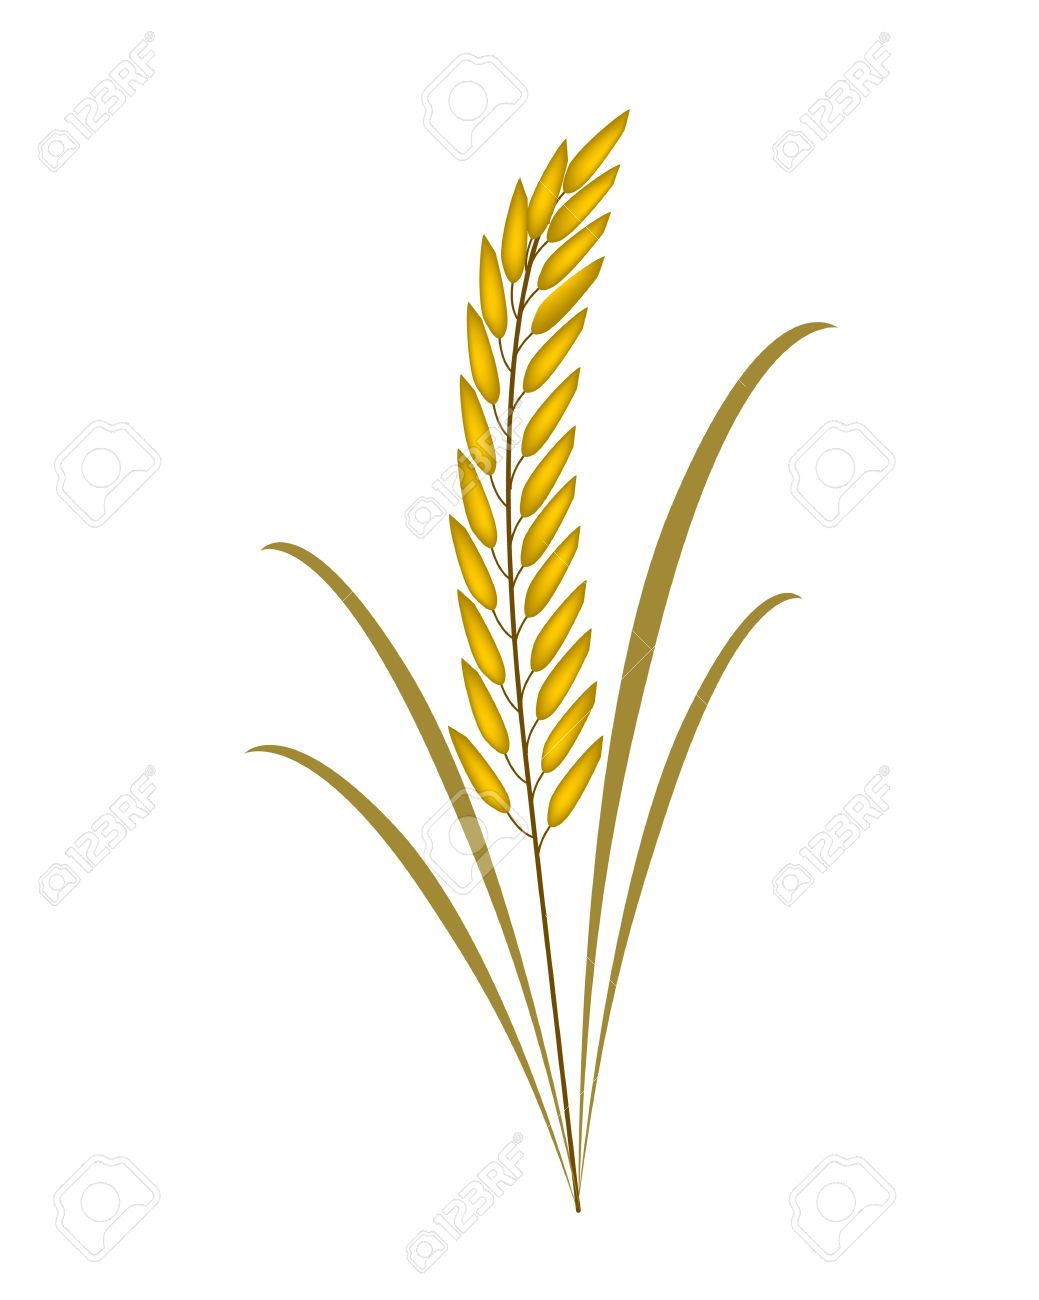 Rice leaf clipart.